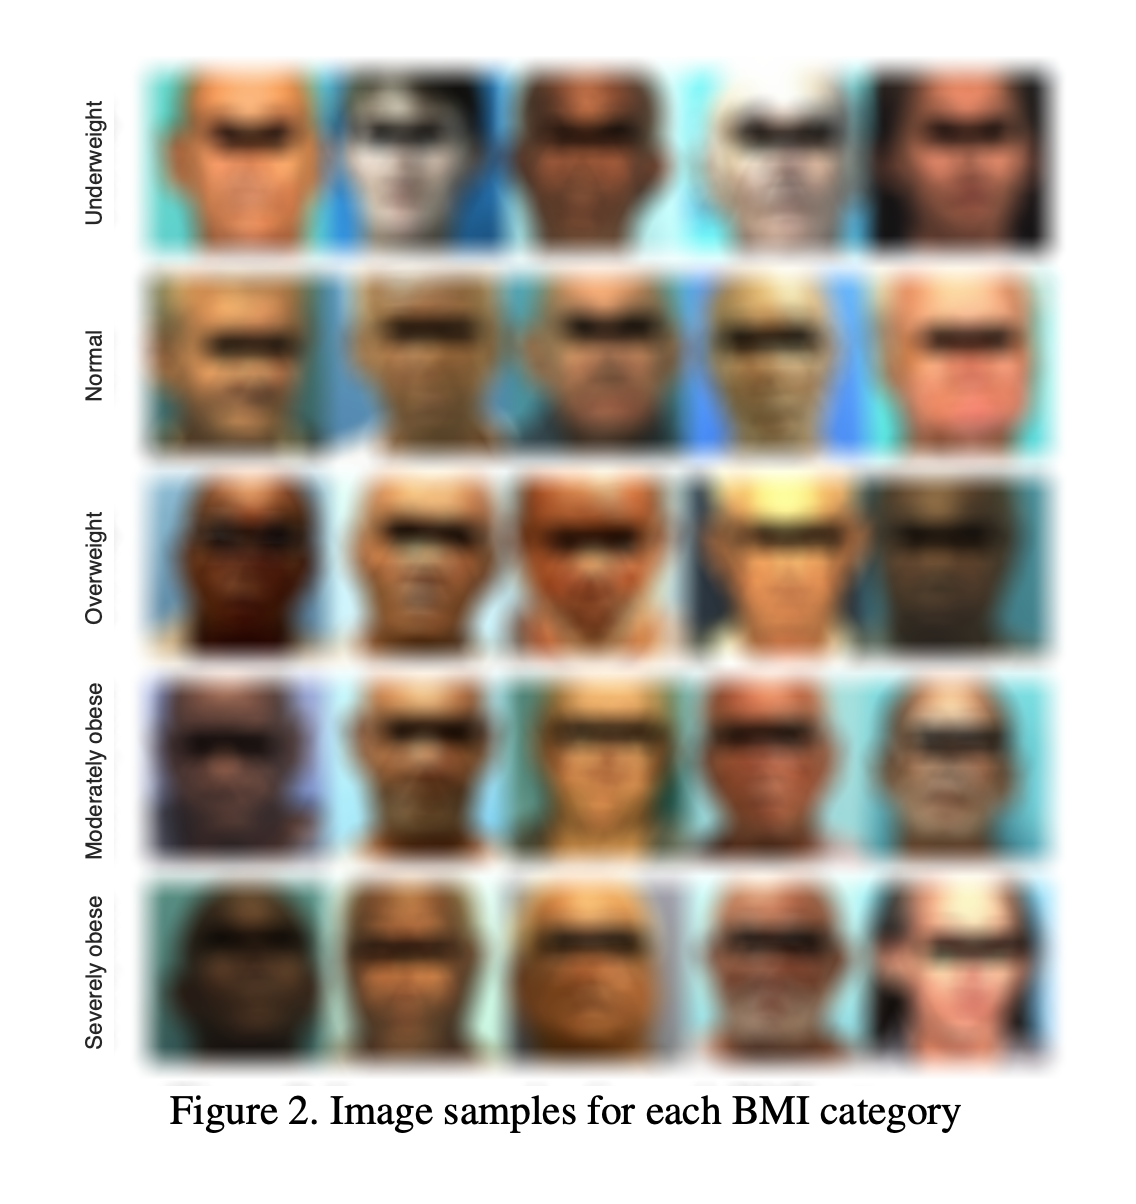 A grid of blurred mugshots showing five examples of of five body mass index categories from underweight to severely obese.